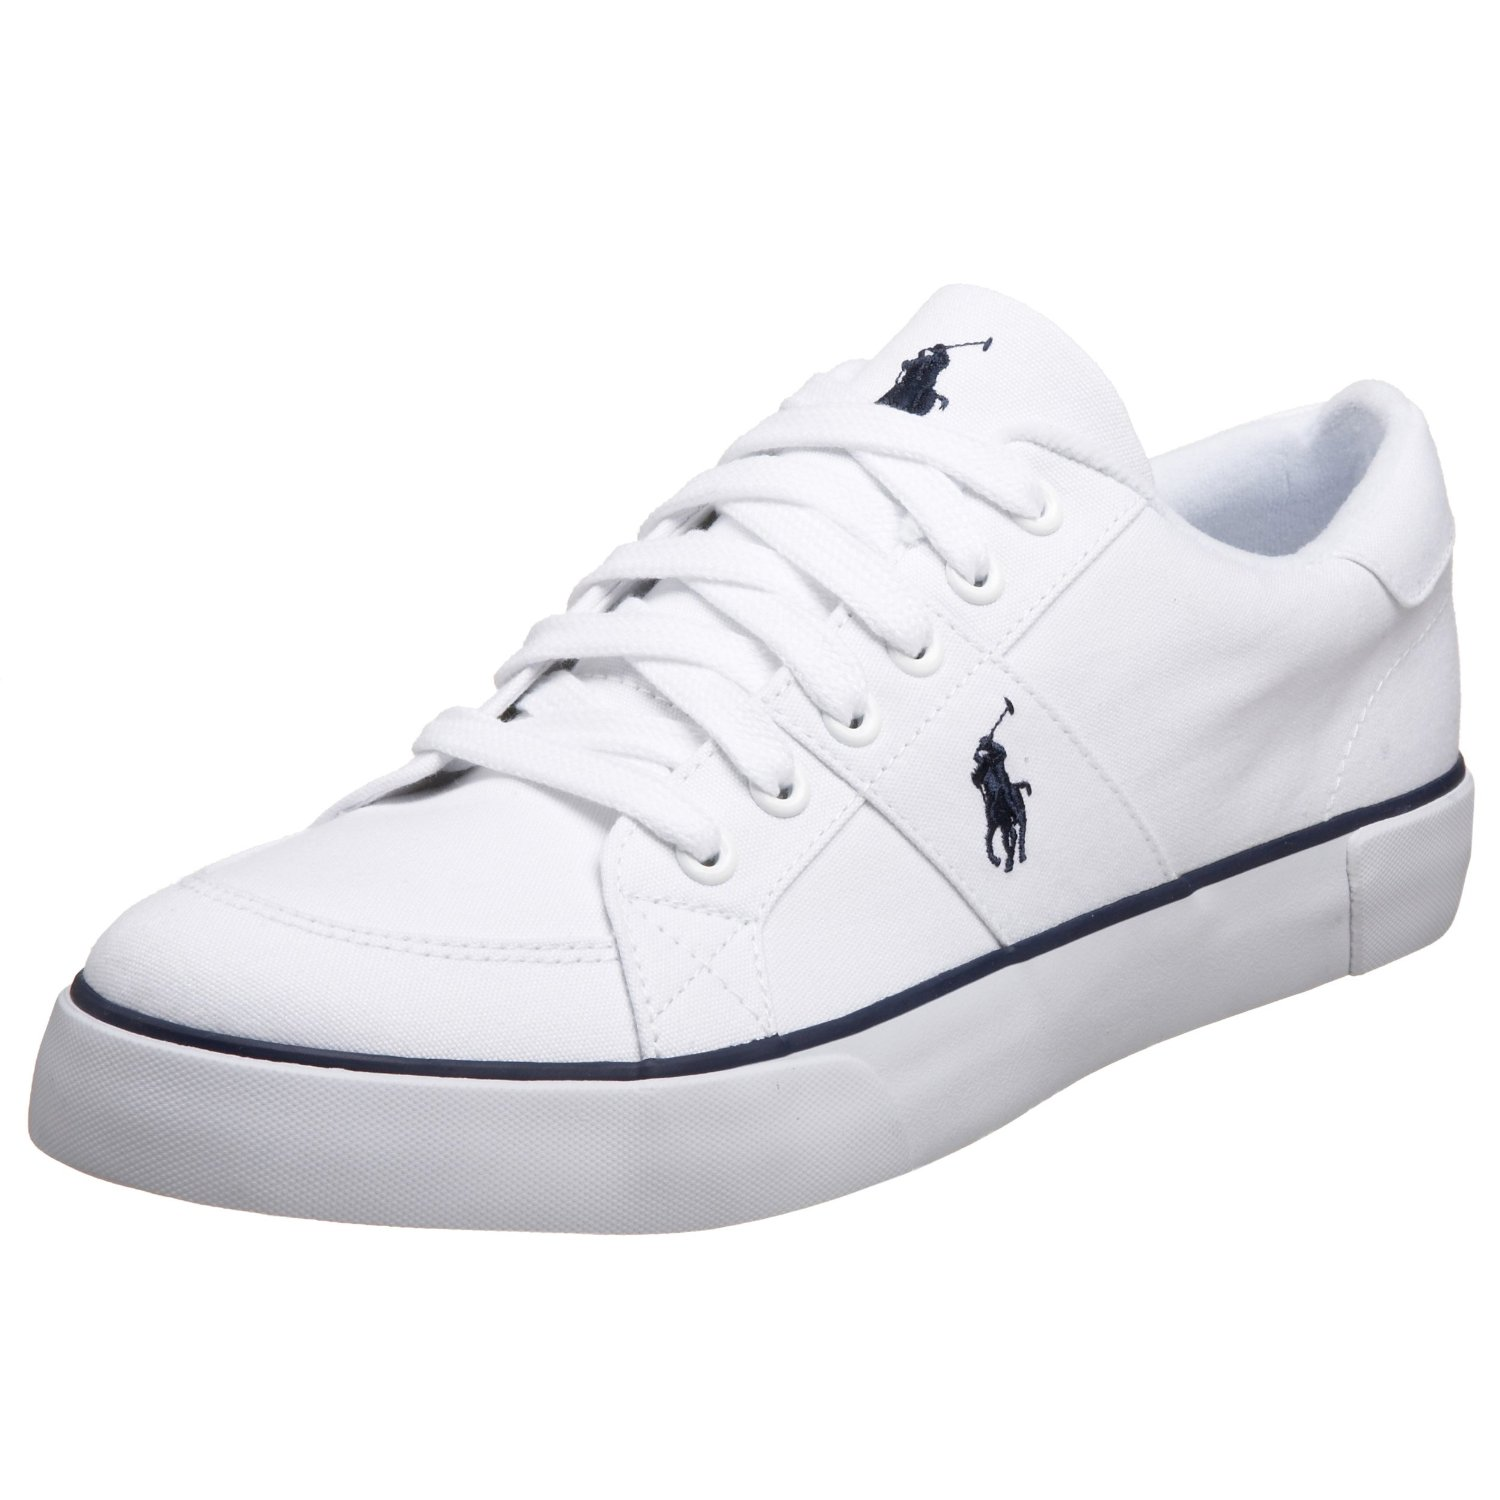 polo ralph lauren white polo ralph lauren mens harold sneaker product. Black Bedroom Furniture Sets. Home Design Ideas